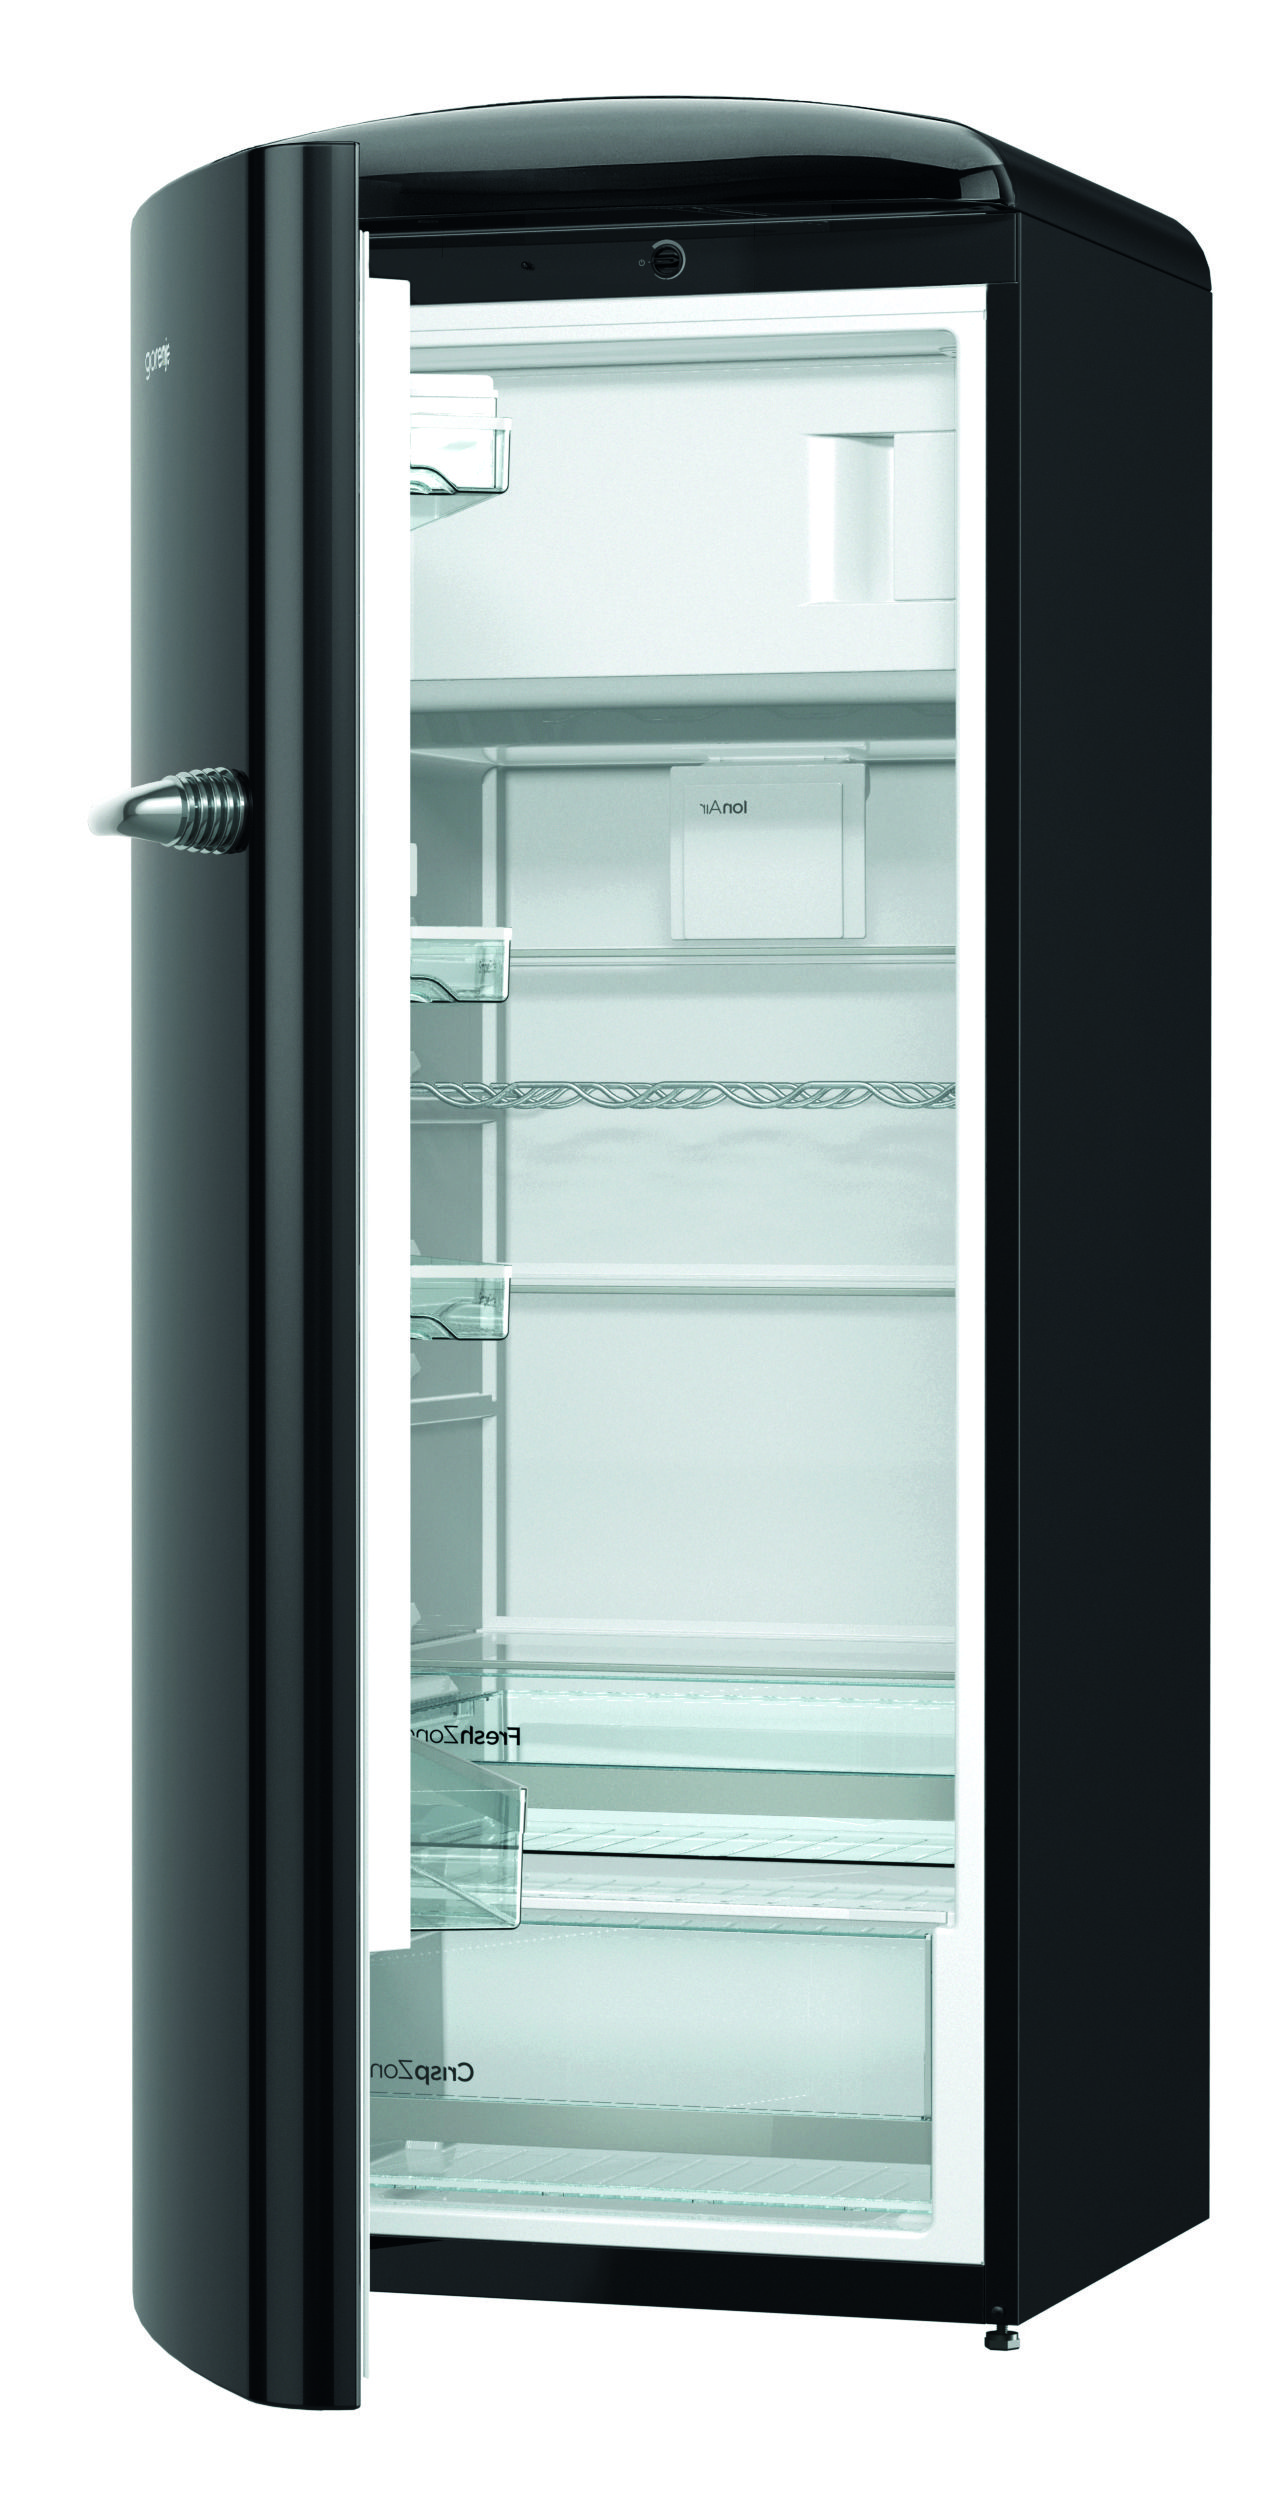 Gorenje Retro Orb153Bk L Refrigerator  Black  Cut Out Open